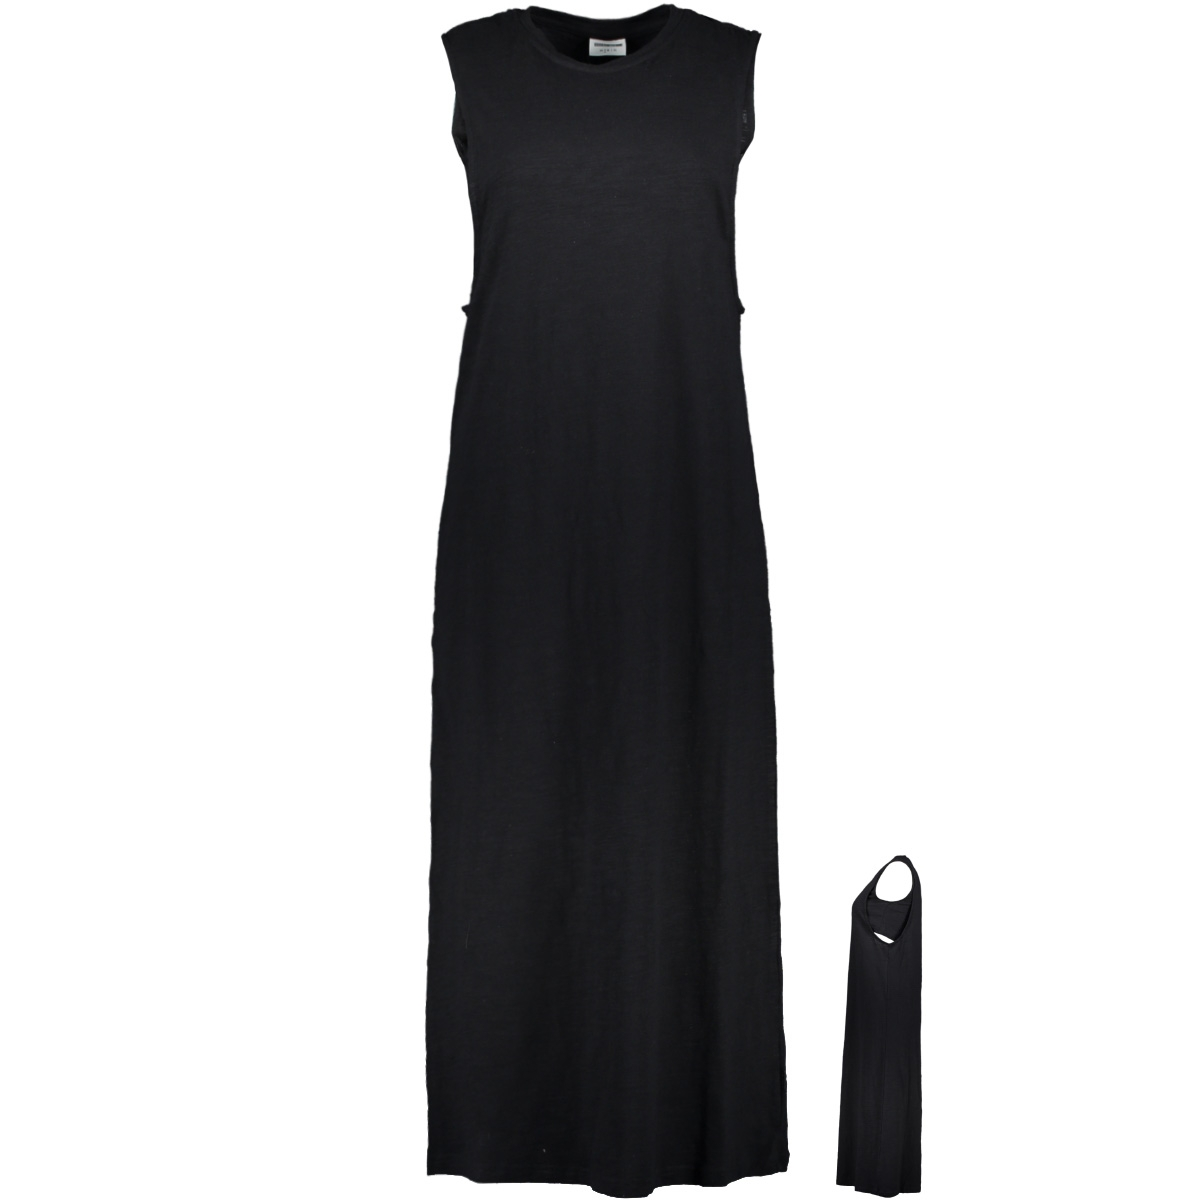 nmlara s/l long dress 5 27008123 noisy may jurk black/without print